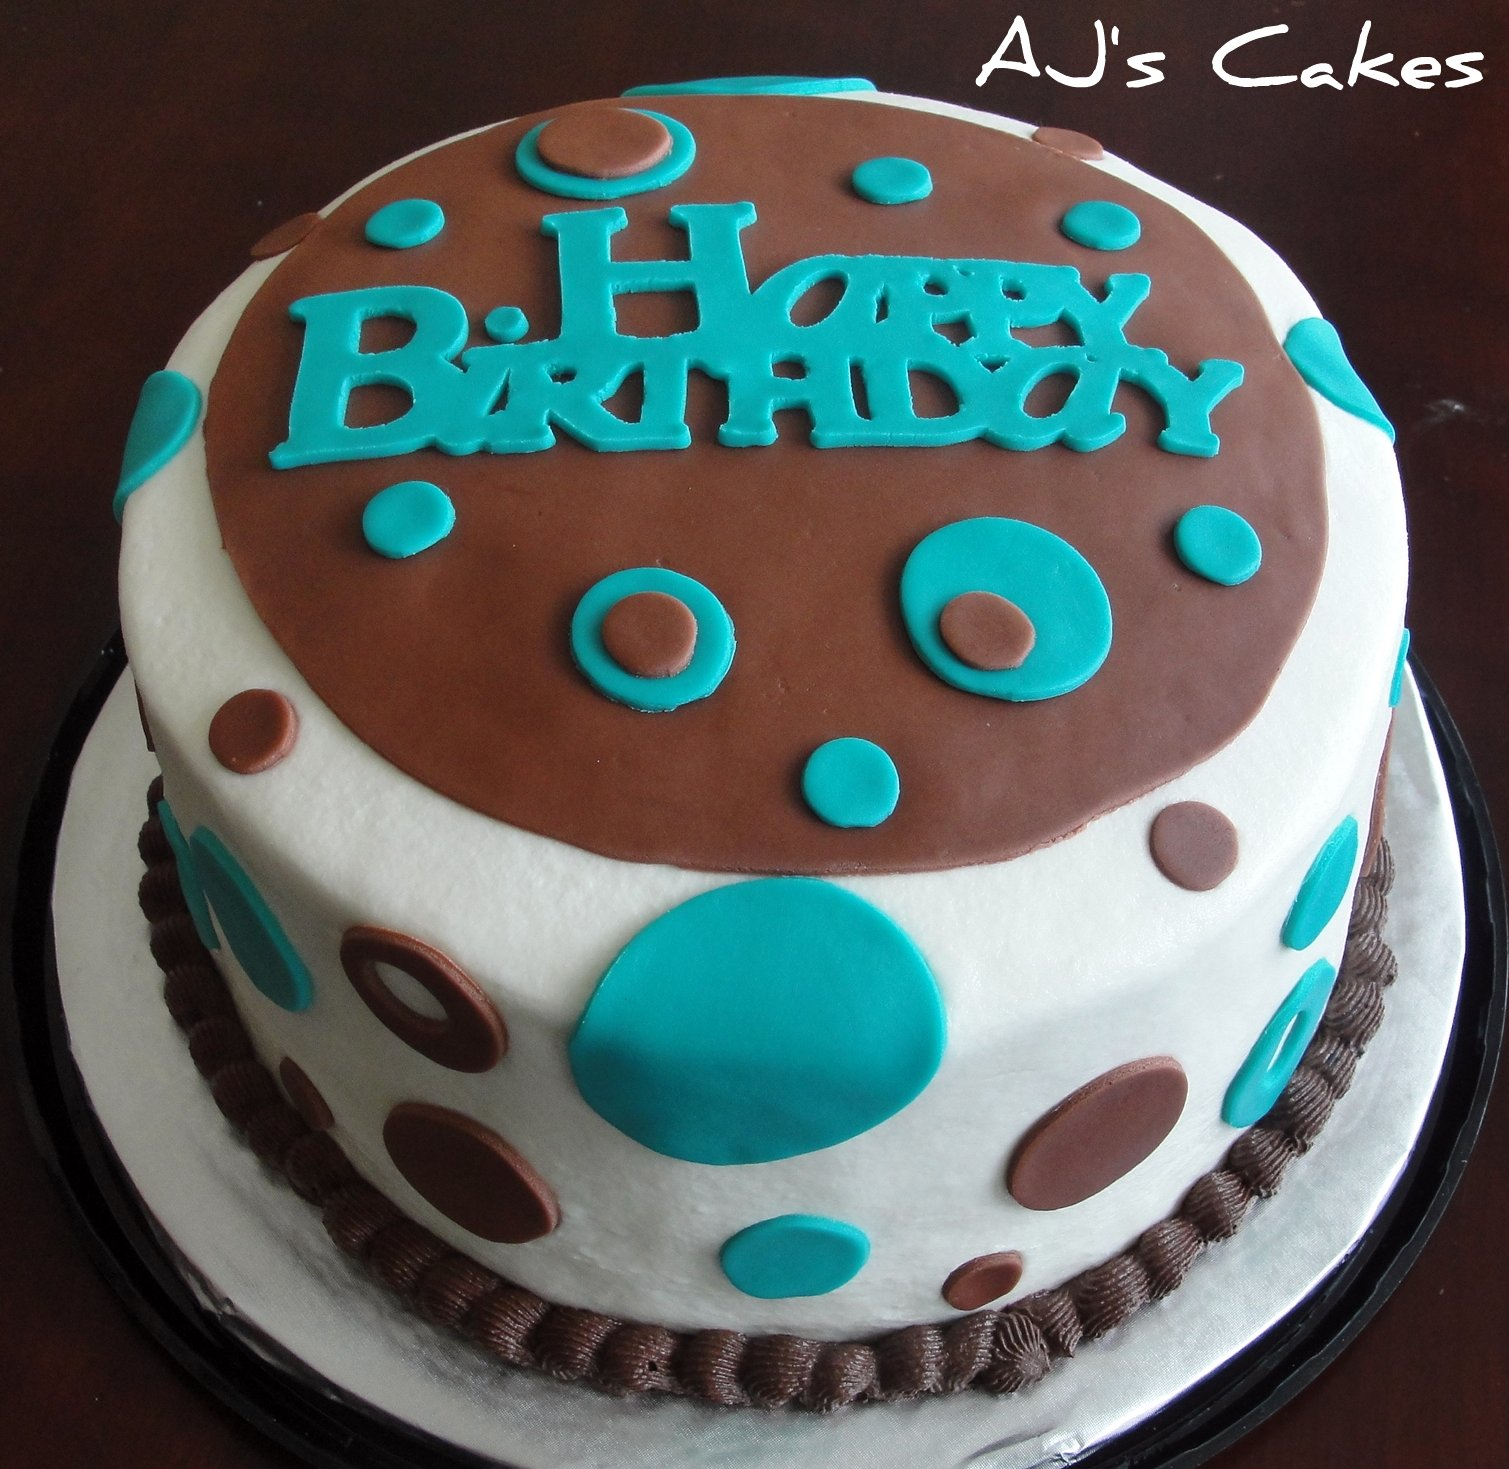 Birthday Cake Photo Galleries : AJ s Cakes: Teal and Brown Birthday Cake